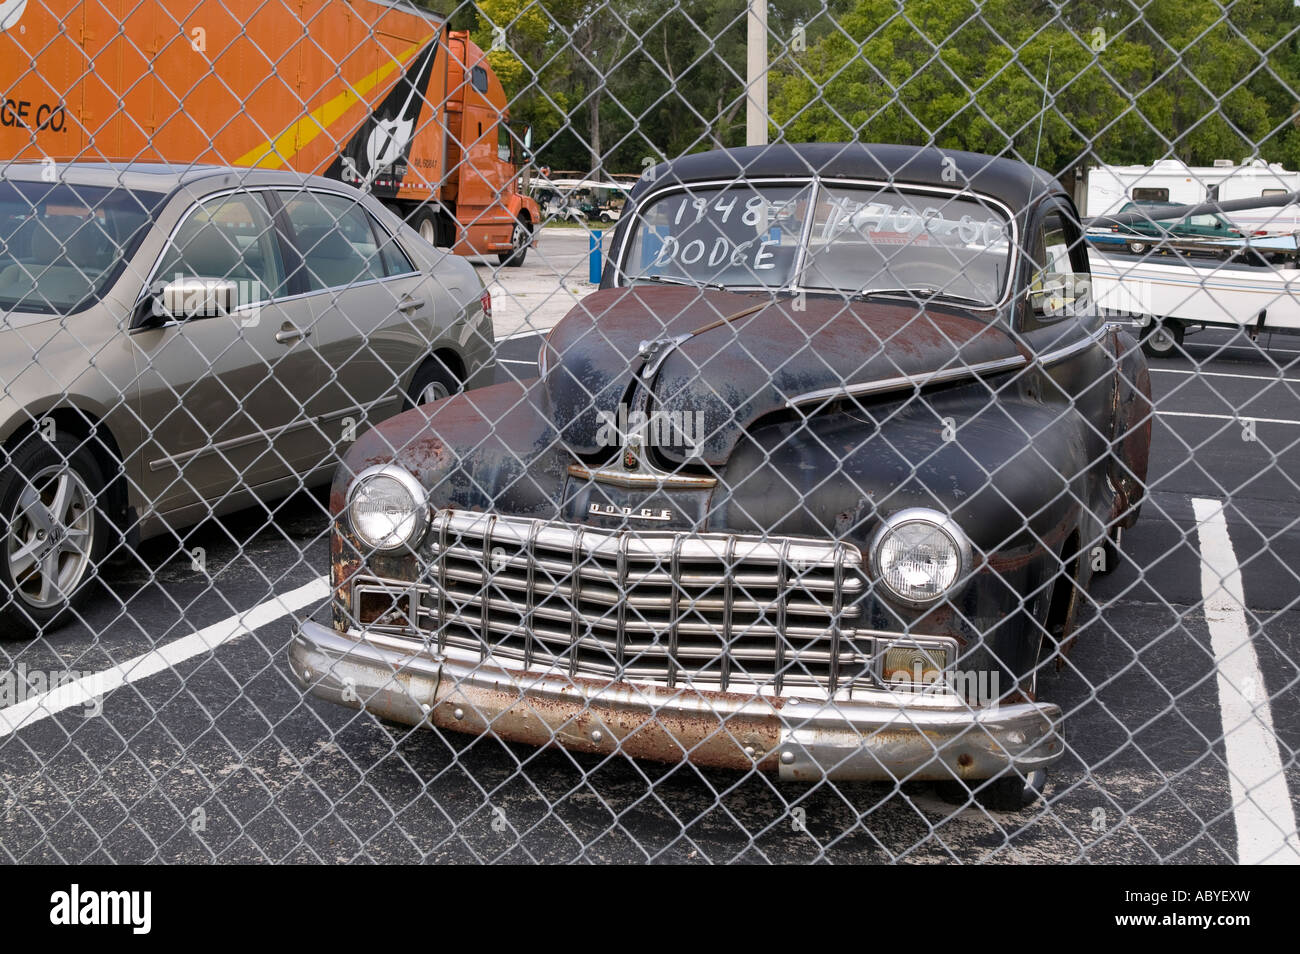 An old 1948 Dodge for sale in Pinellas County Florida Stock Photo ...